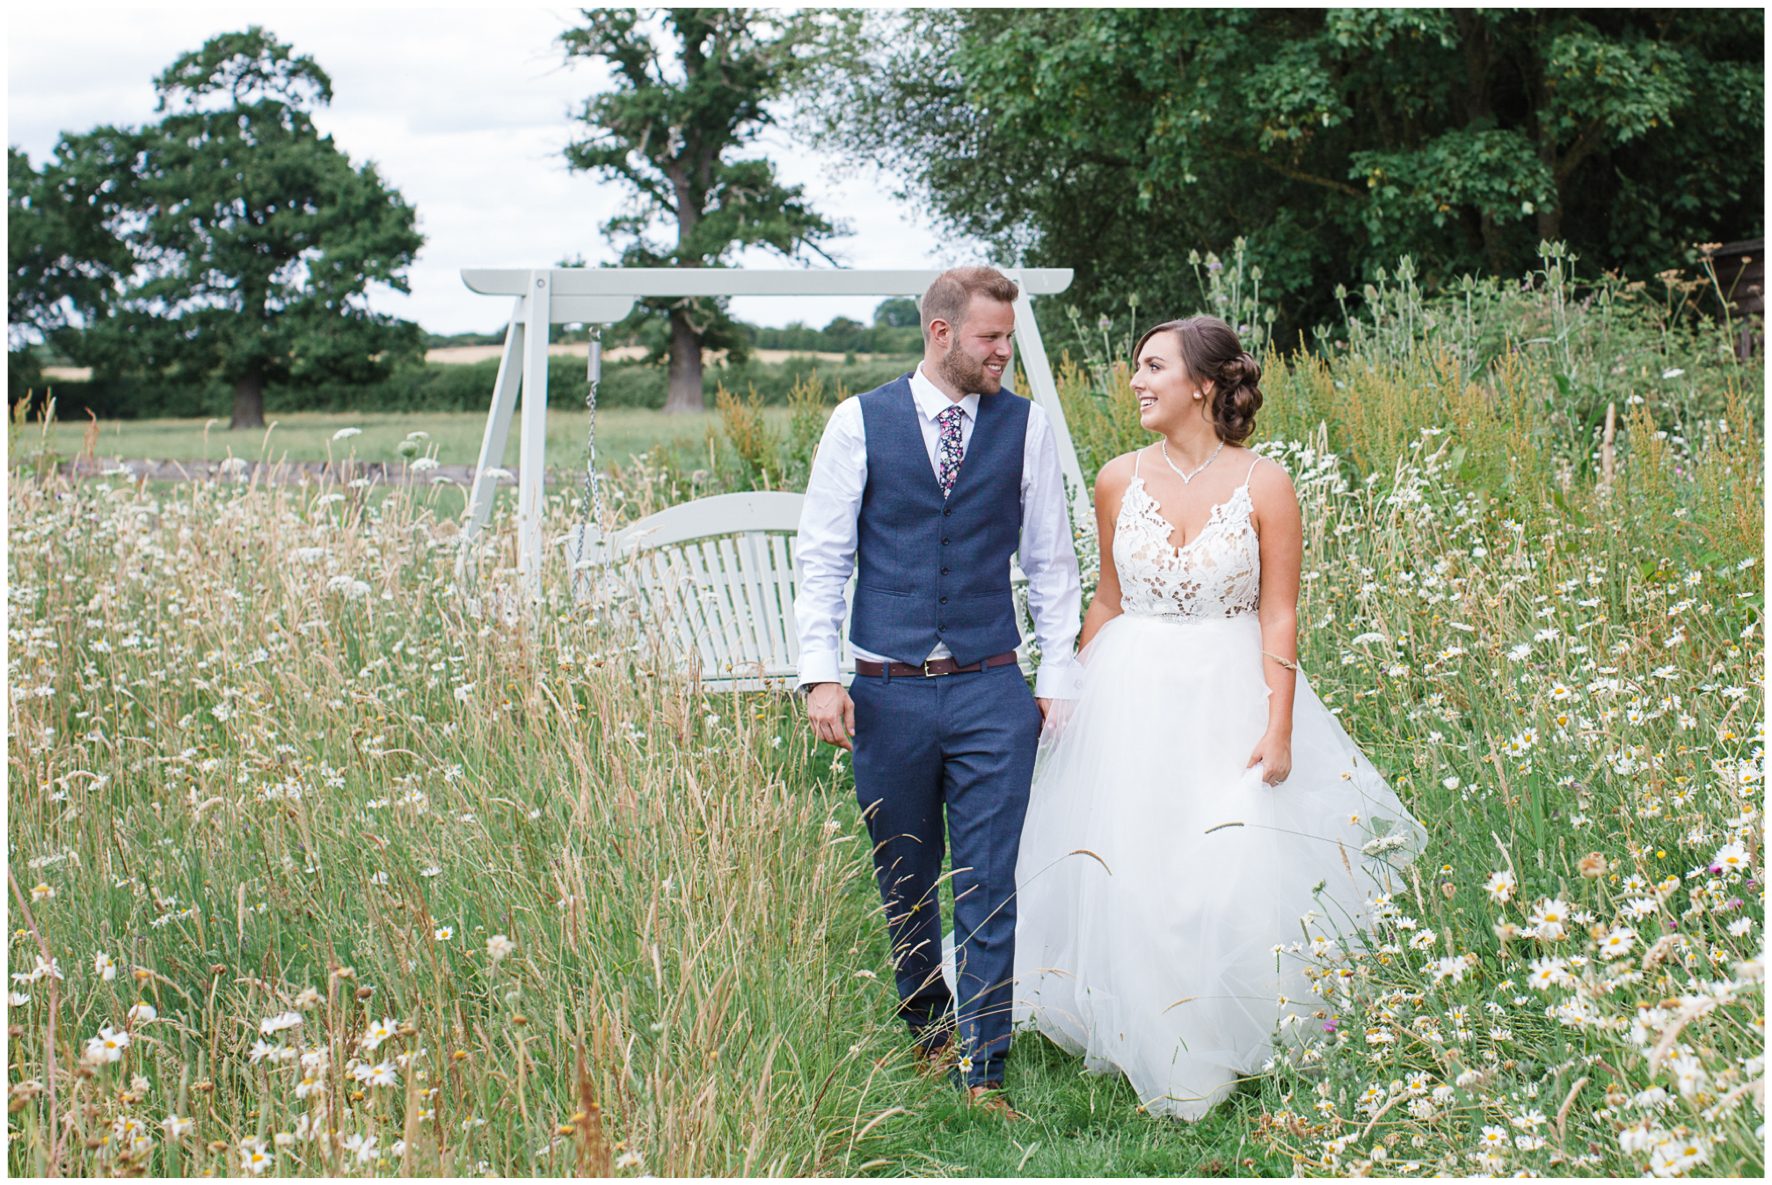 Bride and groom, Caswell House, Haylay Paige bride